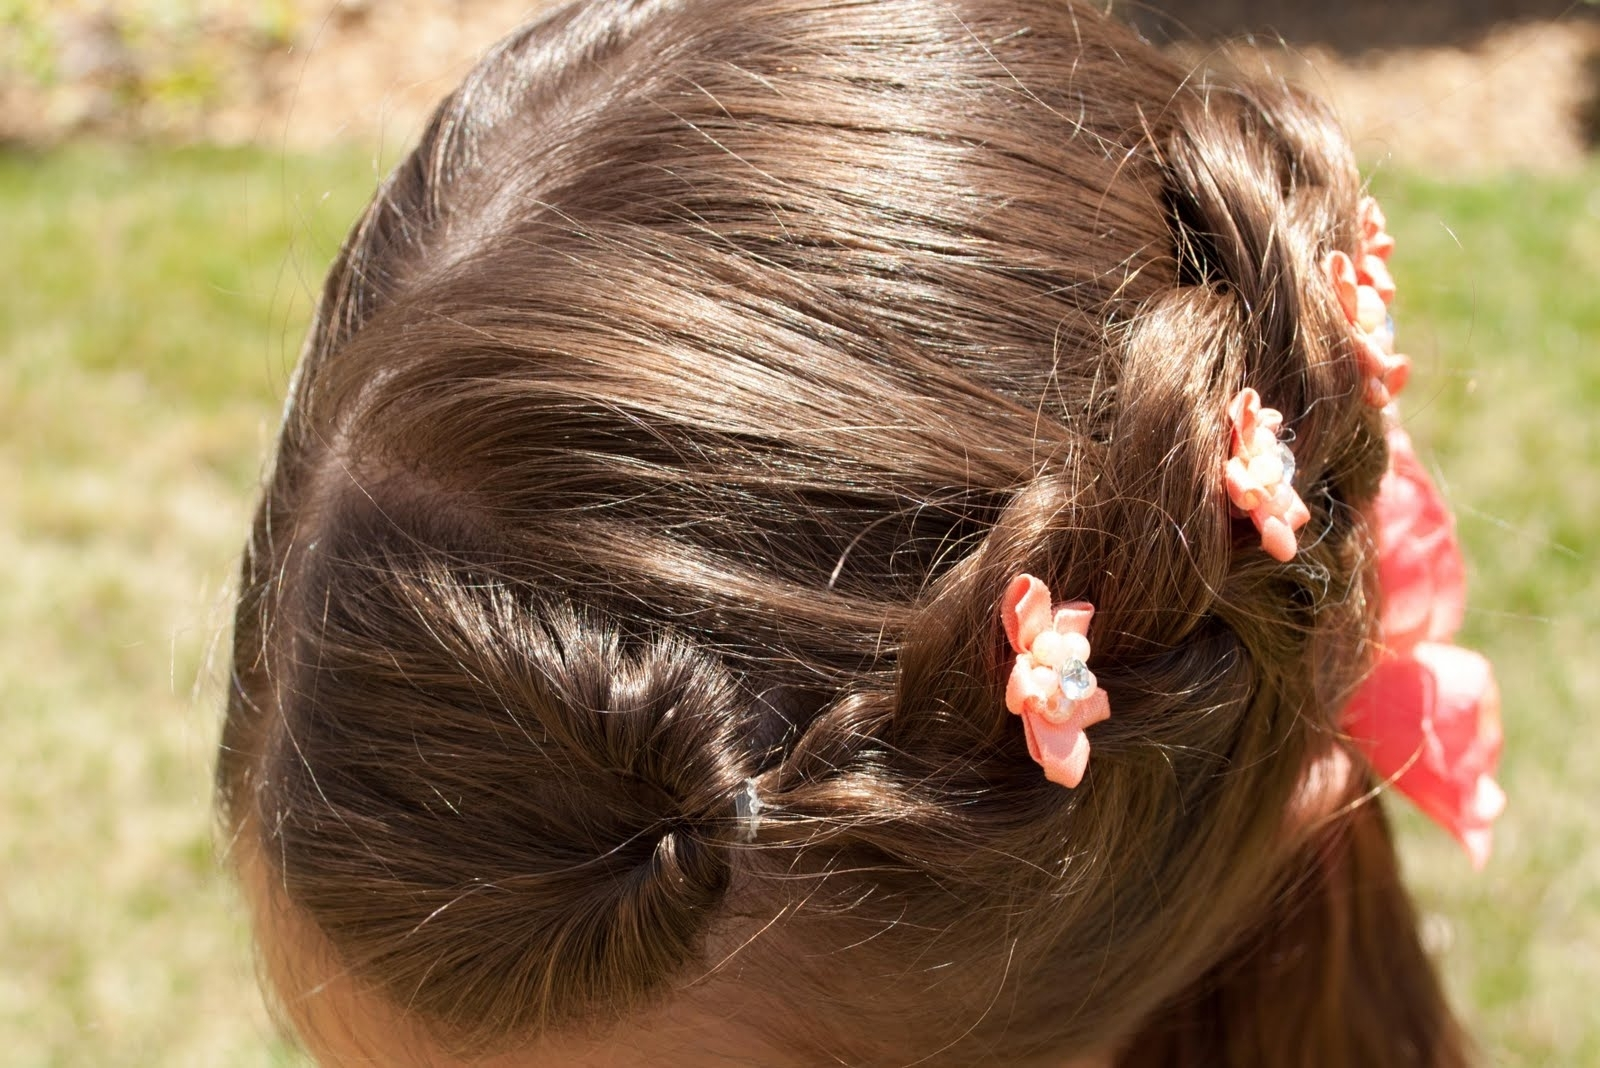 Princess Piggies: Loosey Goosey Throughout Most Popular Loosey Goosey Ponytail Hairstyles (View 15 of 20)